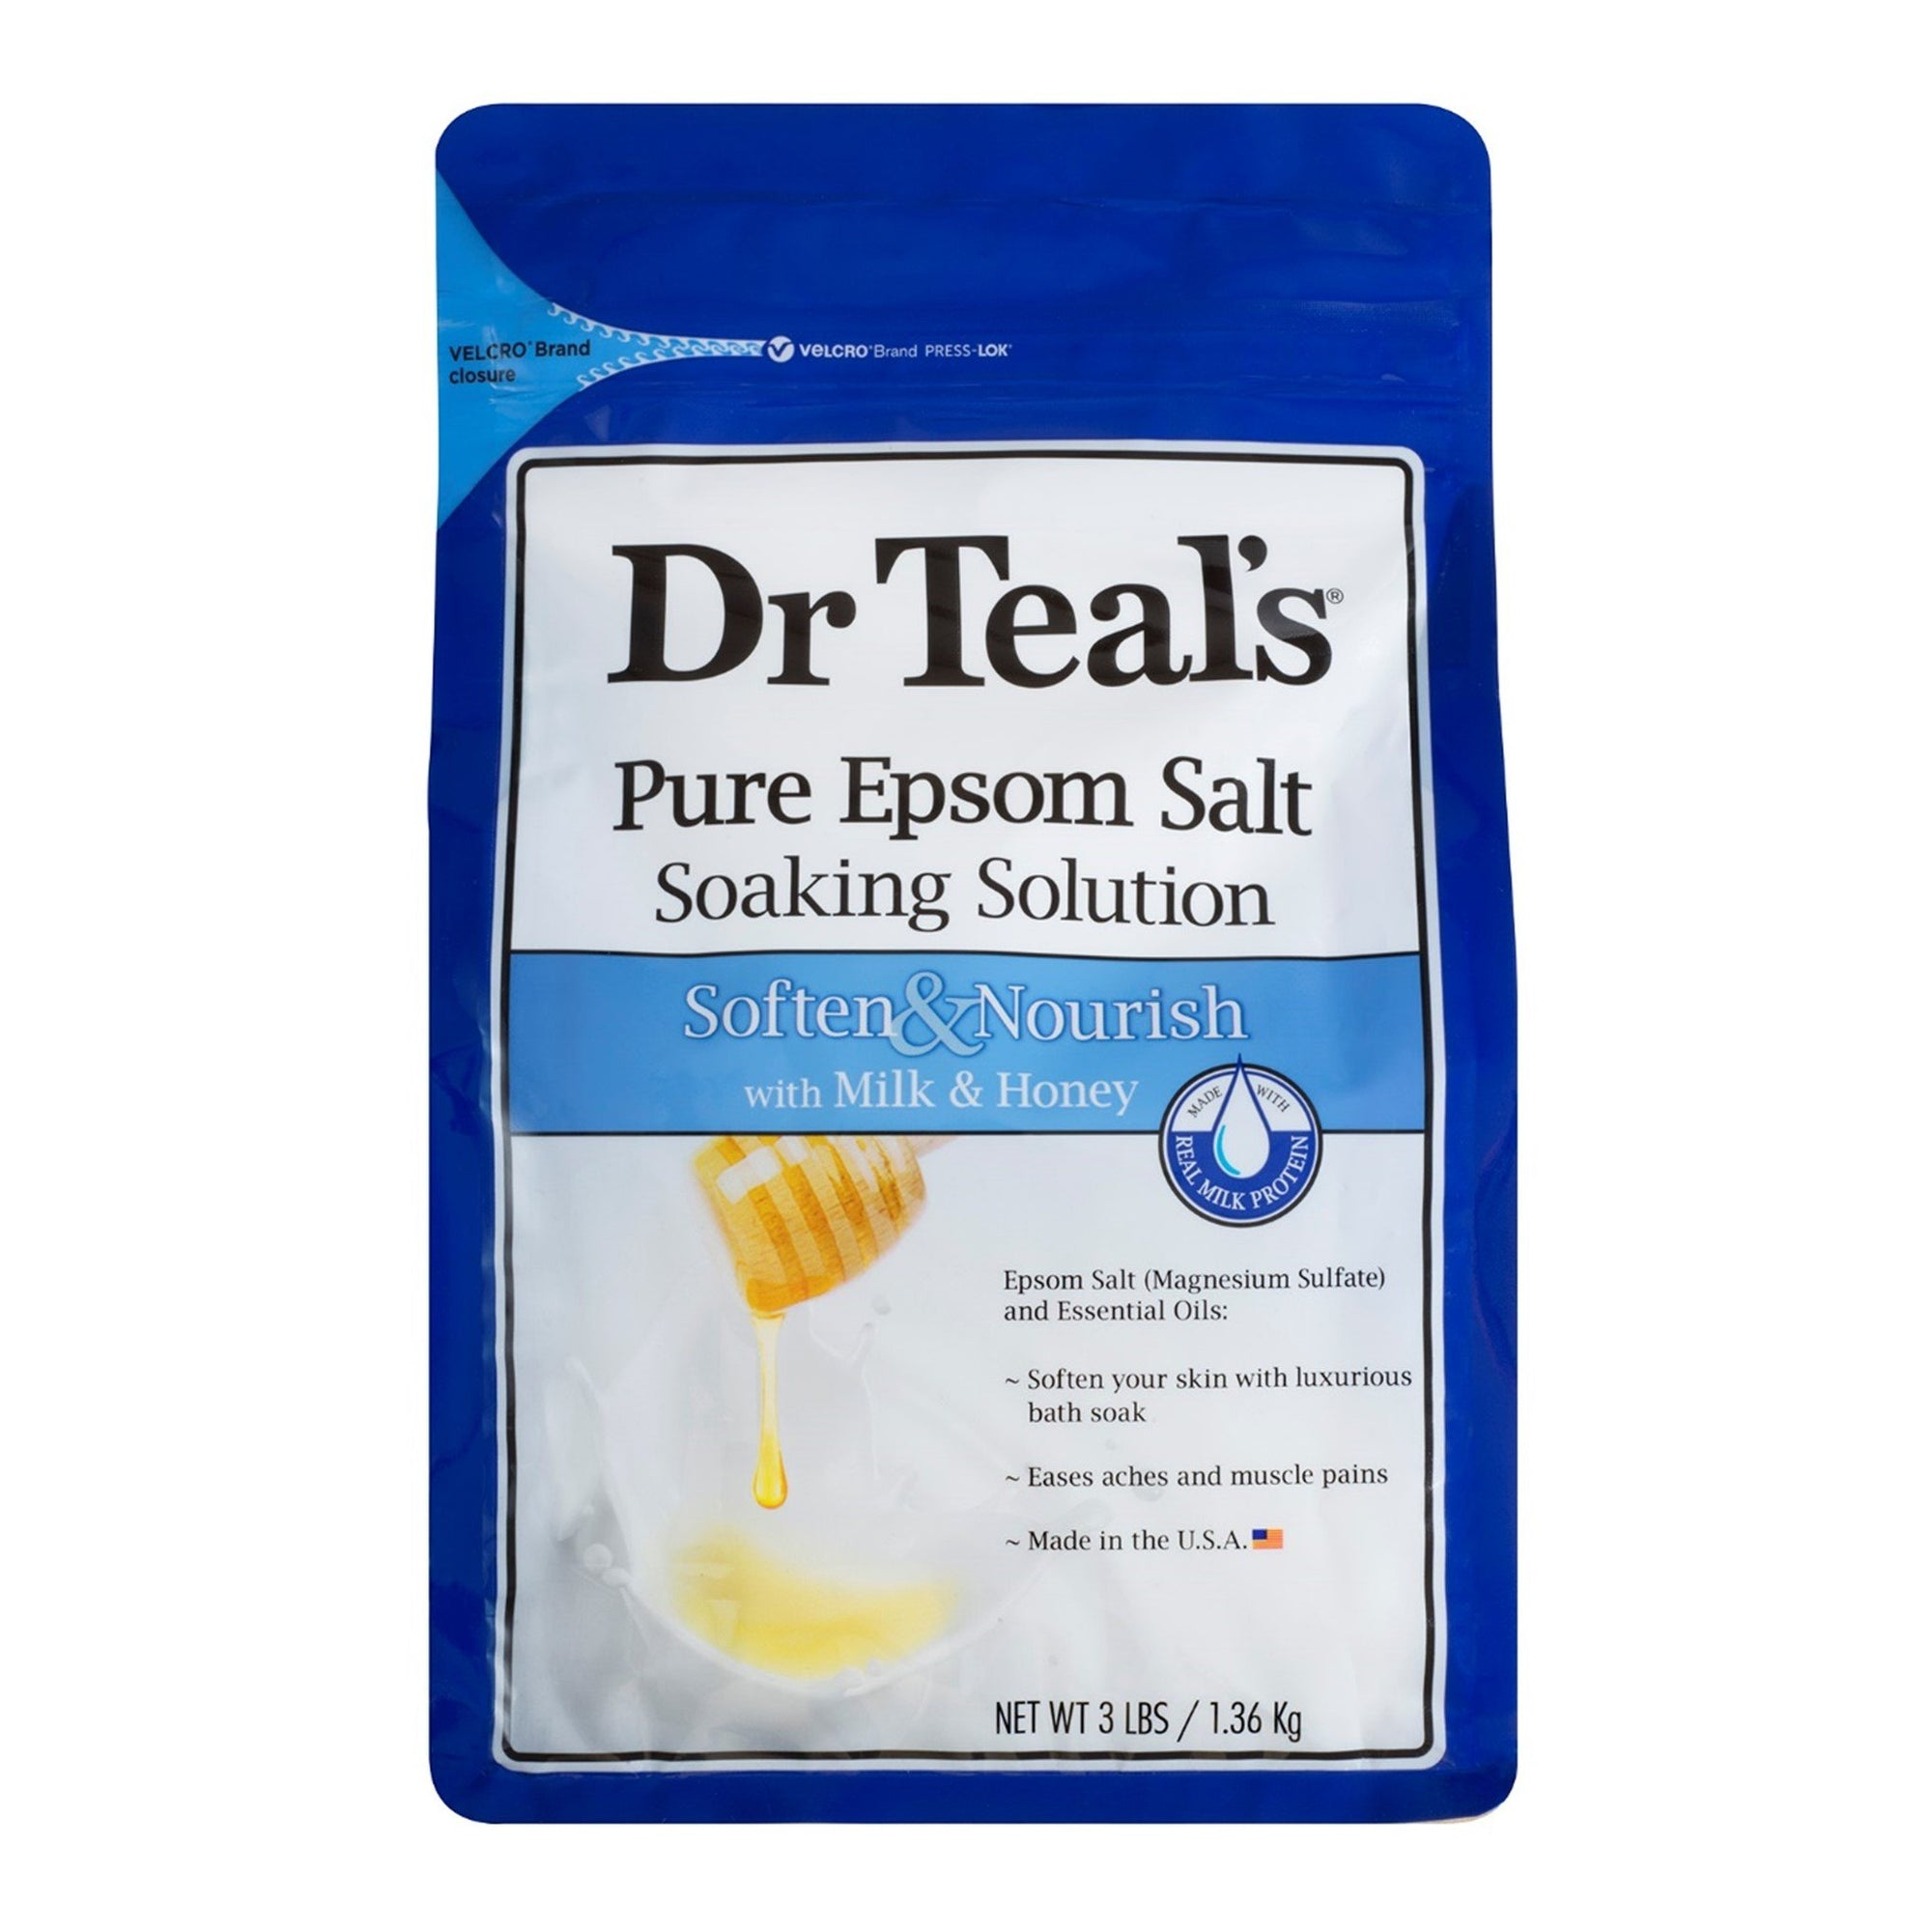 Dr Teal's Soften & Nourish Epsom Salts Milk & Honey 1360G